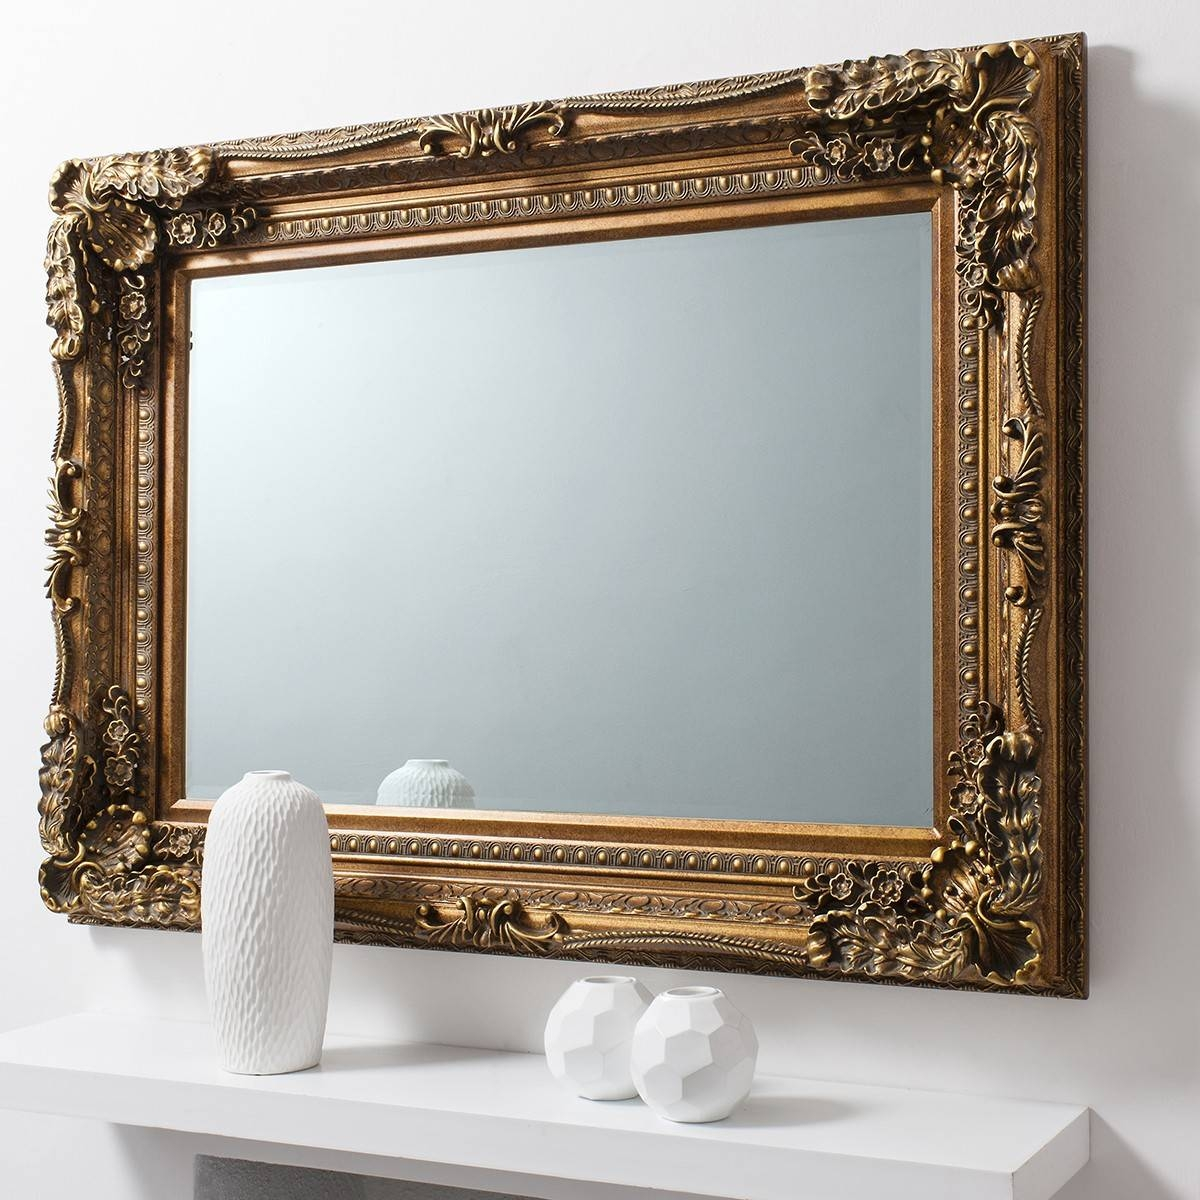 Versailles Baroque Mirror From £249 – Luxury Wall Mirrors | Ashden With Regard To Baroque Wall Mirrors (View 13 of 15)